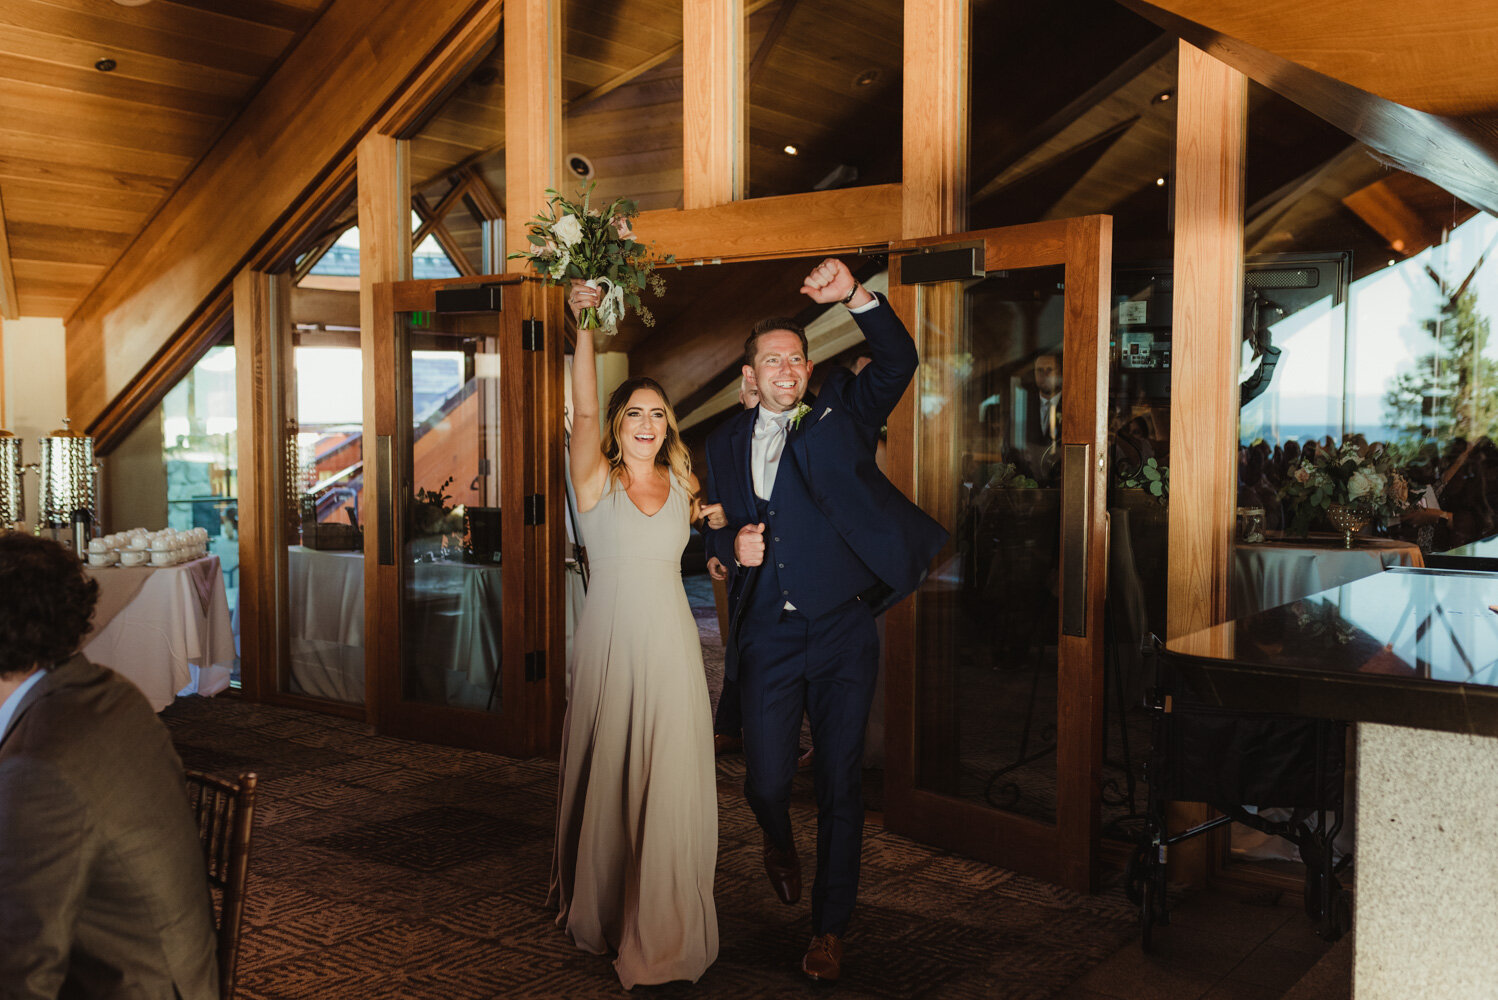 Edgewood Tahoe Wedding, grand entrance photo of bridal party